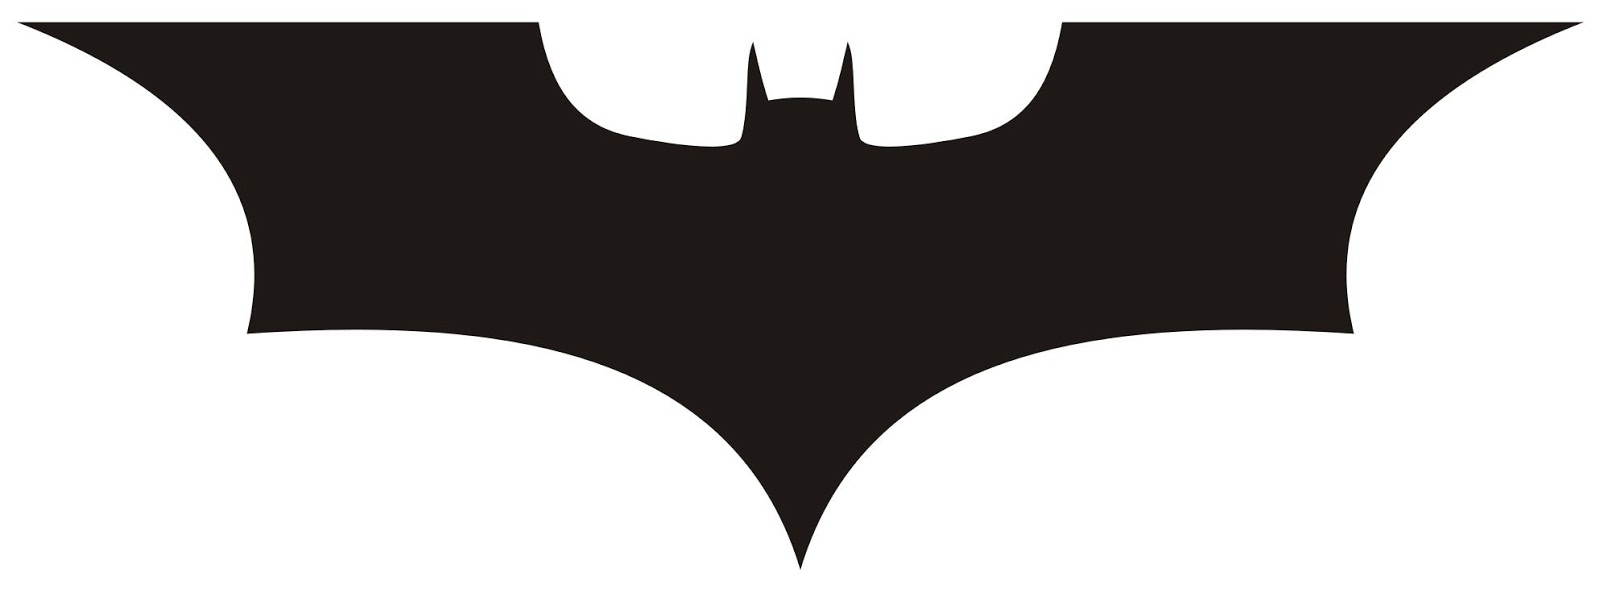 12 Batman Dark Knight Logo Vector Images - Transparent ...